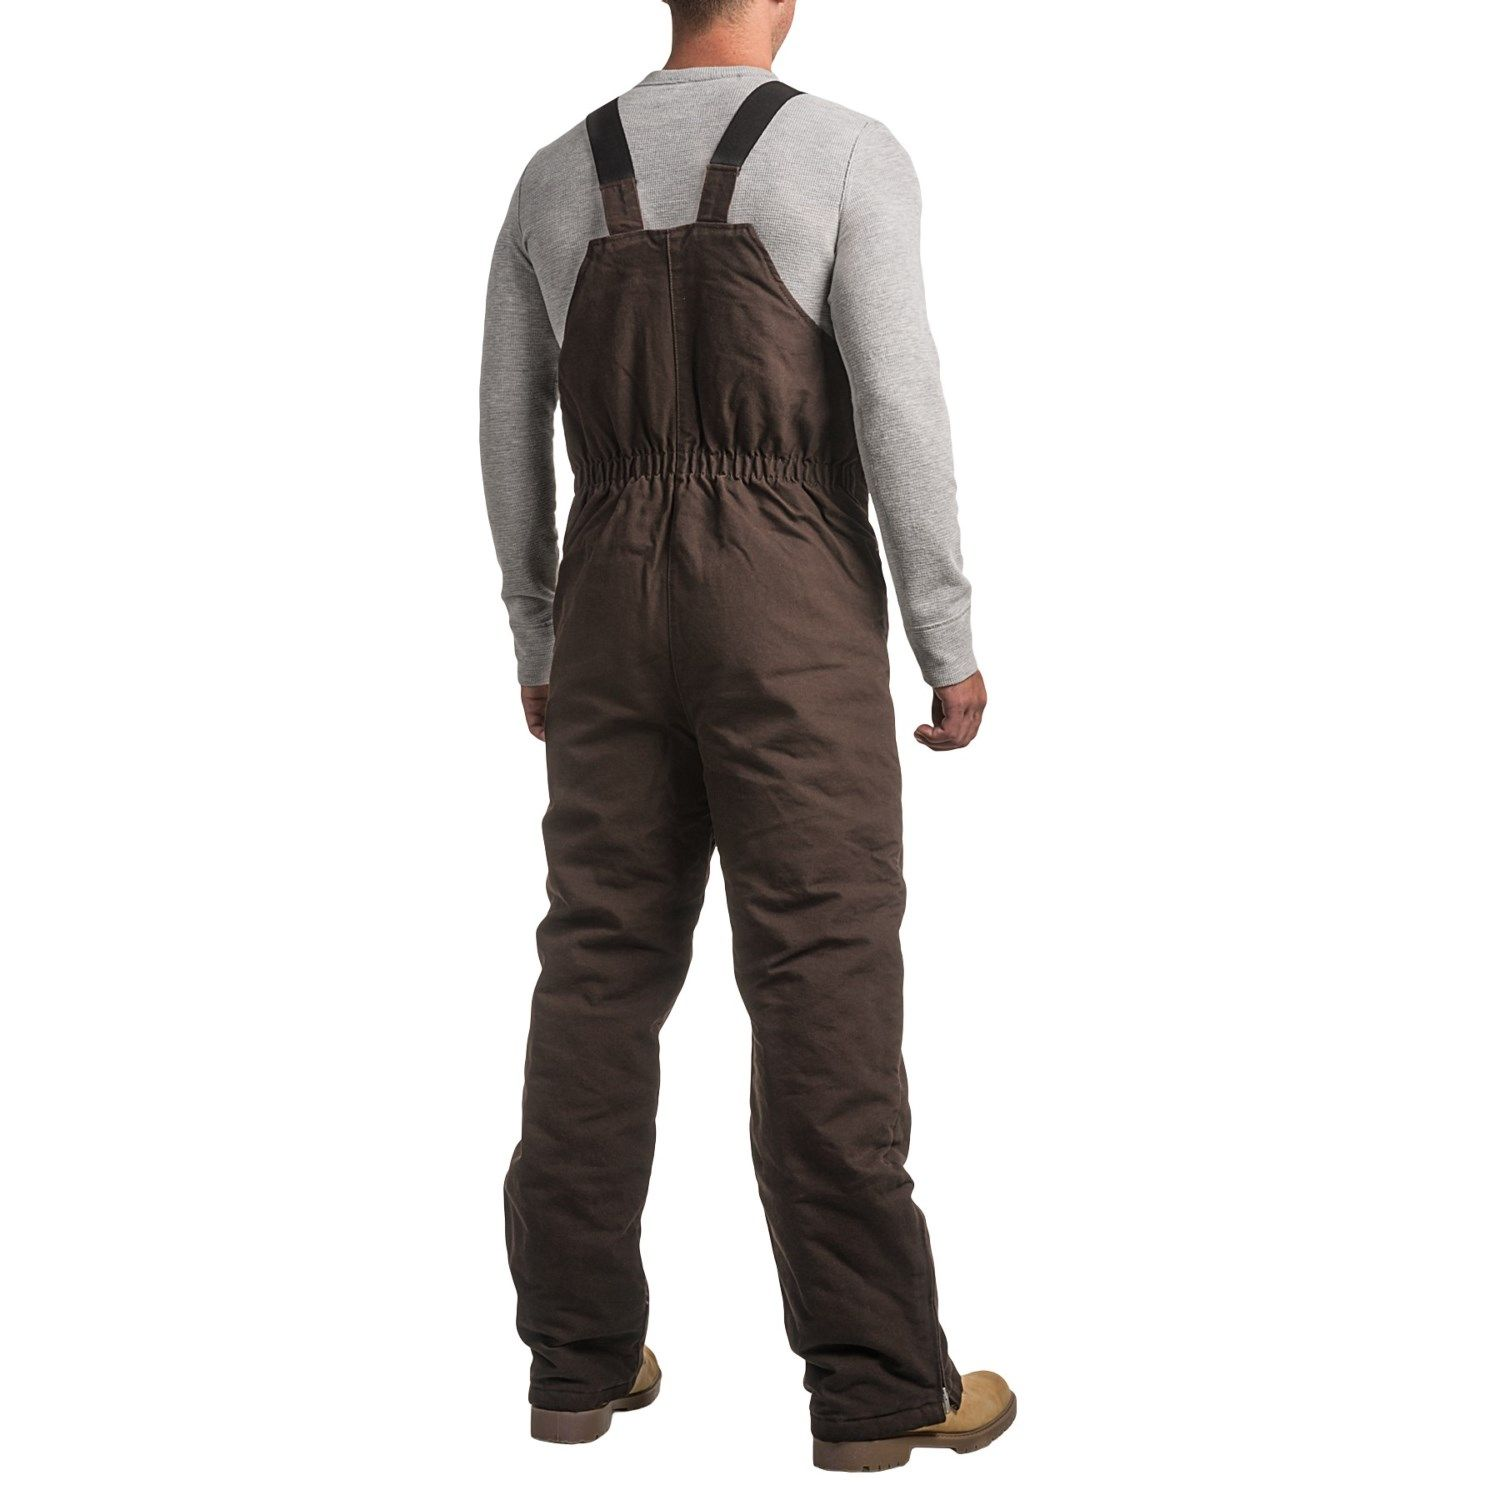 work horse washed bib overalls insulated for men on insulated work overalls id=28867